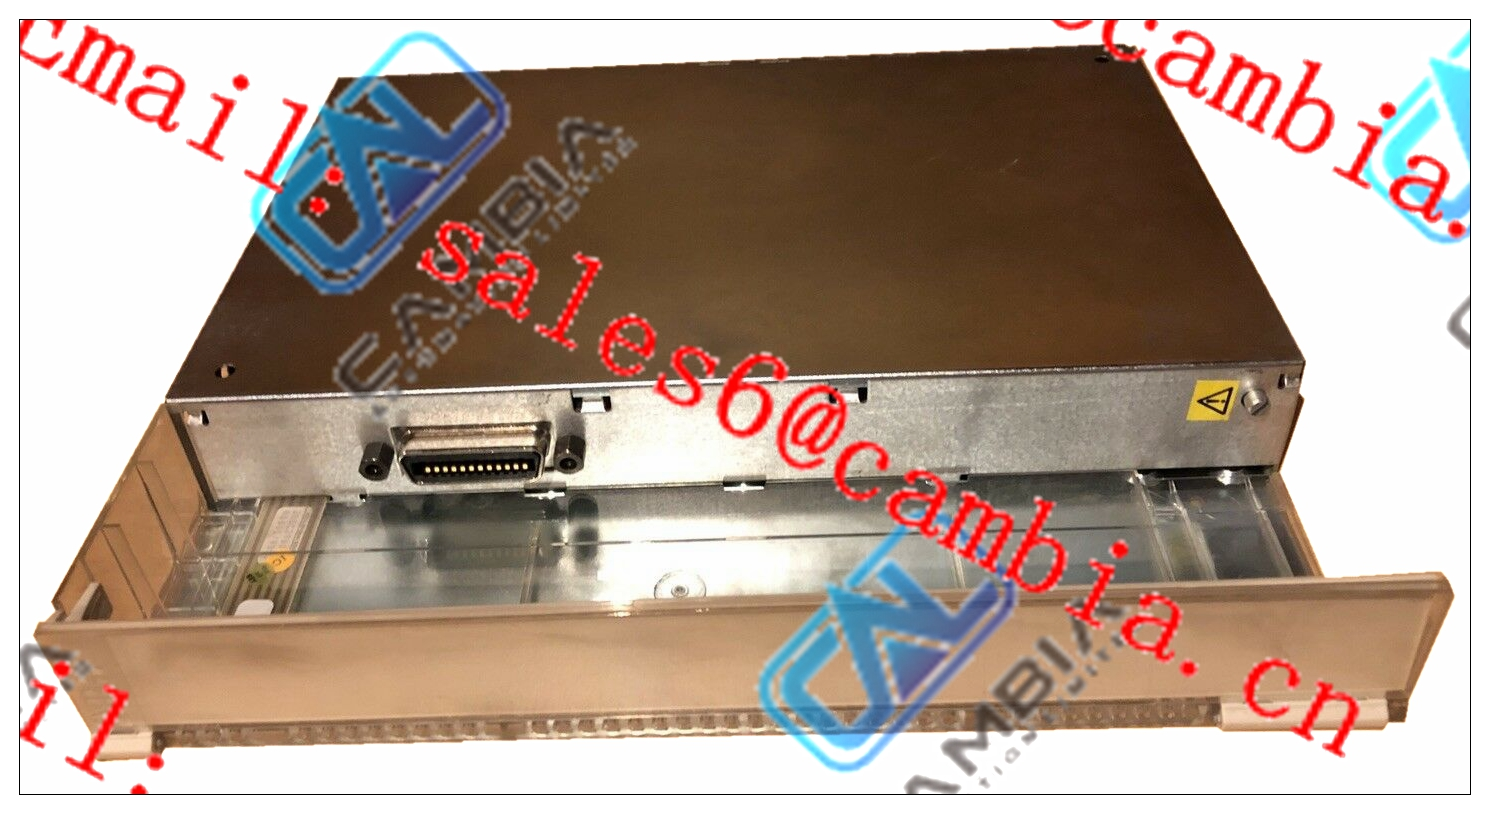 3HAC025338-004	Processor Interface Adaptor